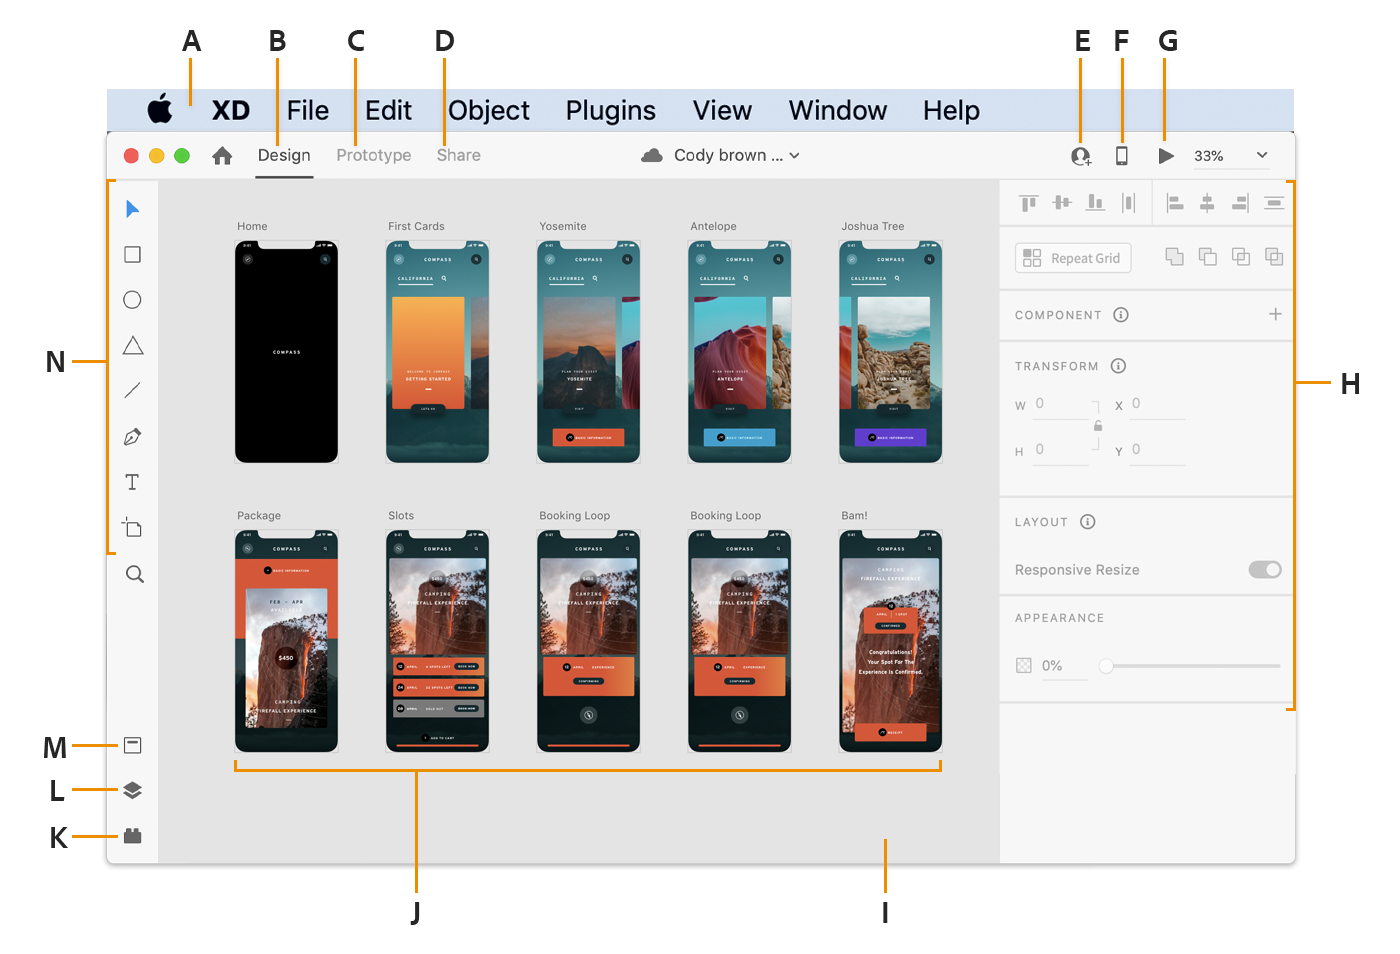 Adobe XD workspace on Mac